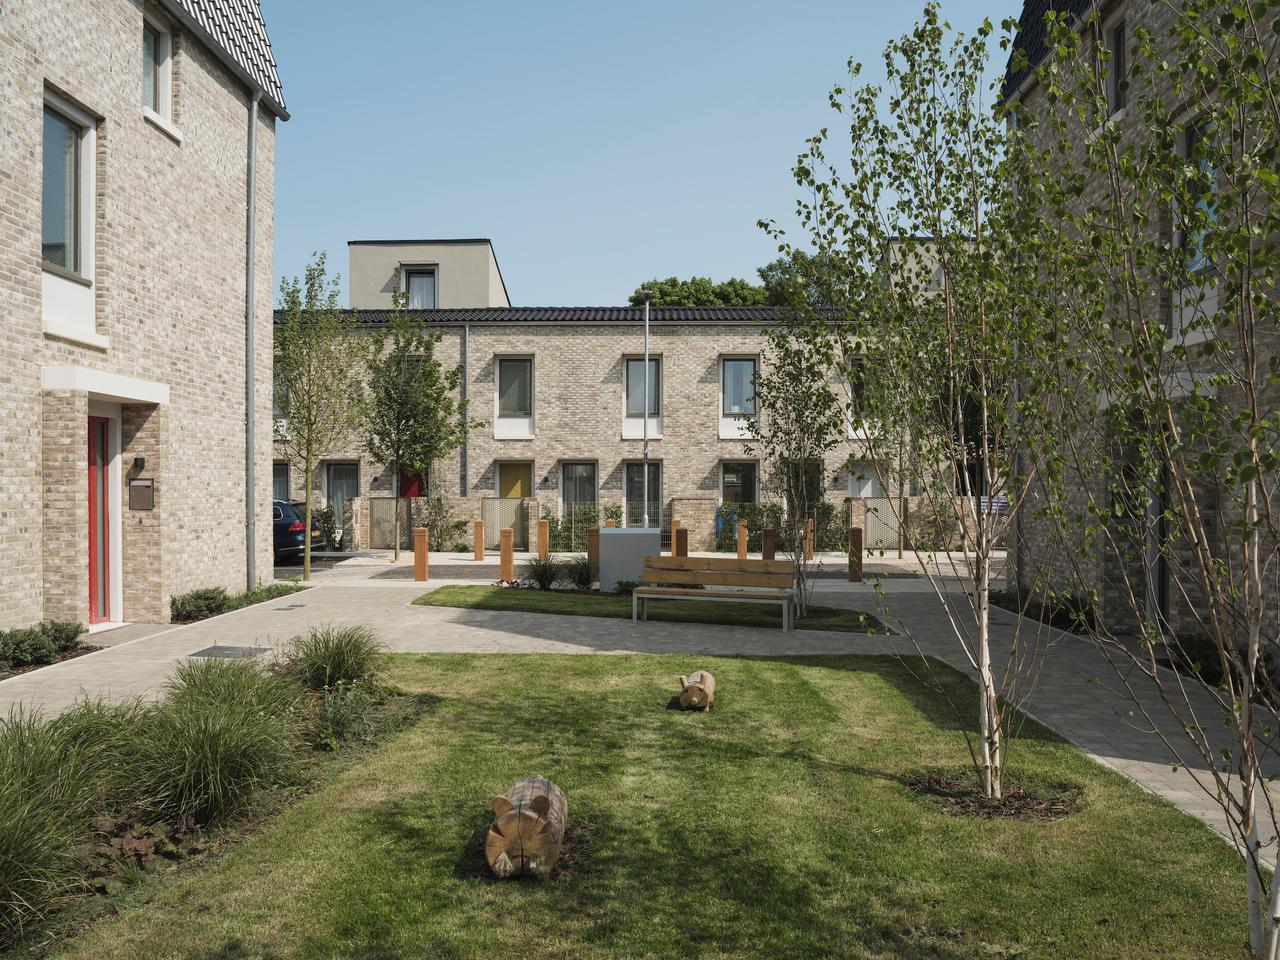 Goldsmith Street, by Mikhail Riches with Cathy Hawley, is a superb sustainable social housing project in the UK